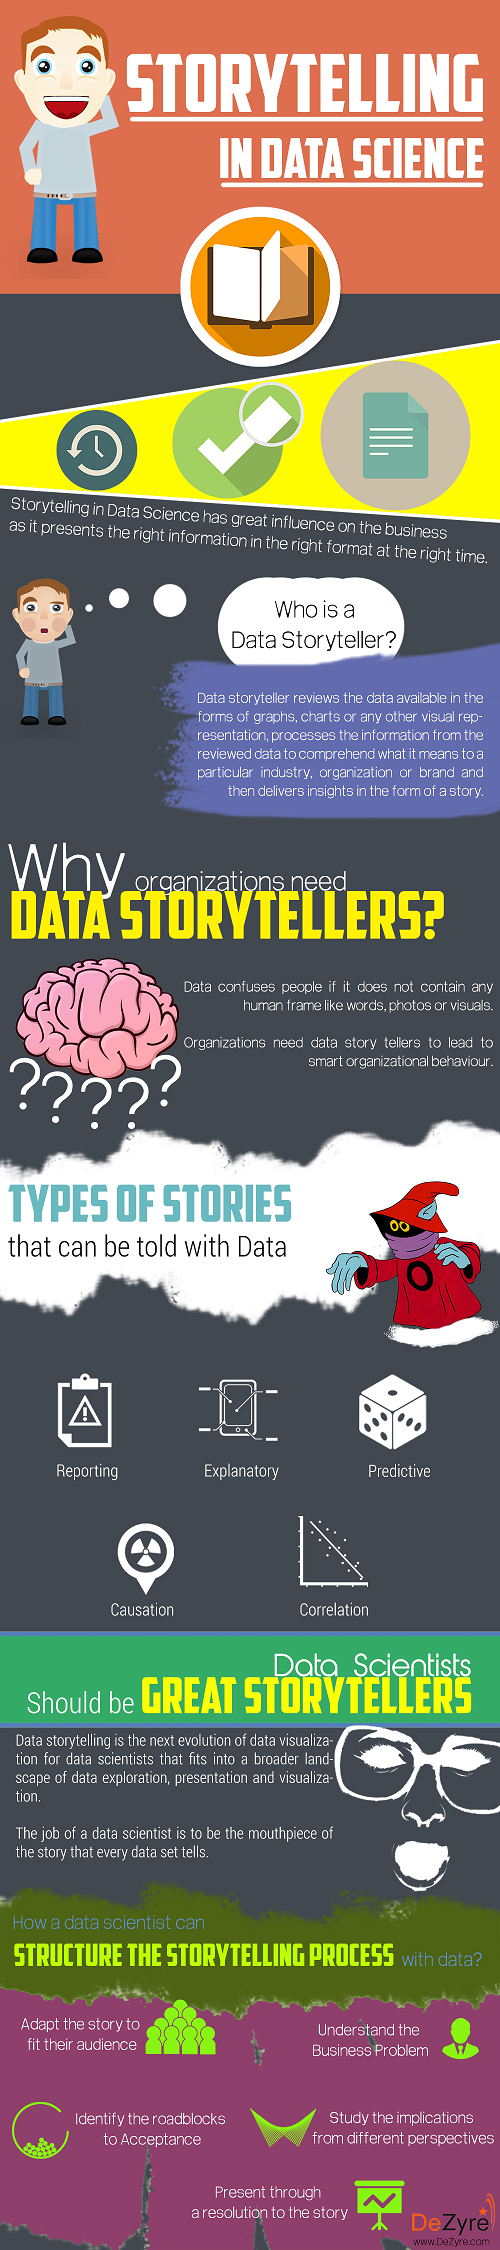 Data Scientists Must Have Data Storytelling Skills